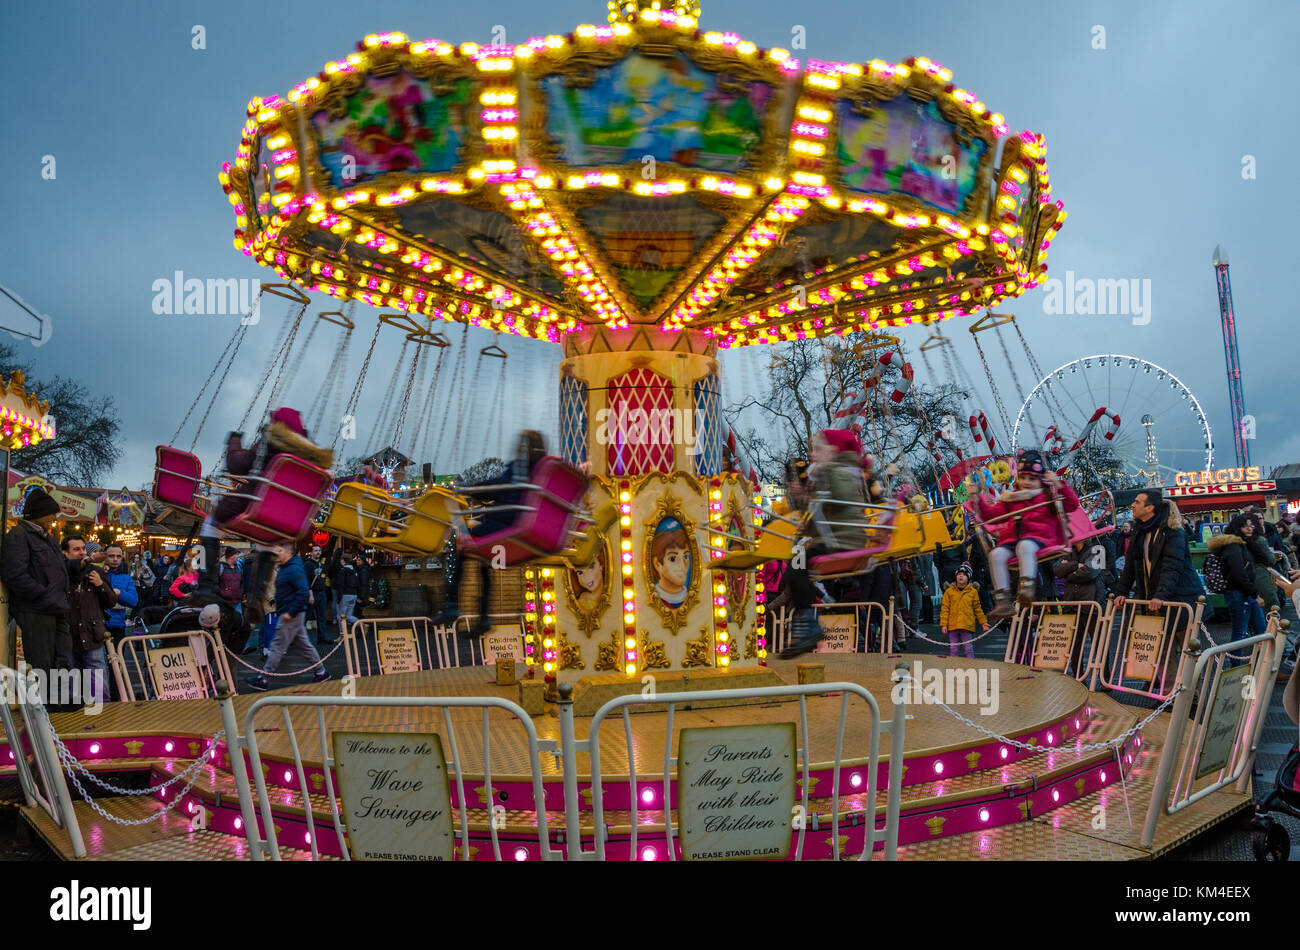 A chair-o-planes ride for young children at a fairground at sunset. - Stock Image